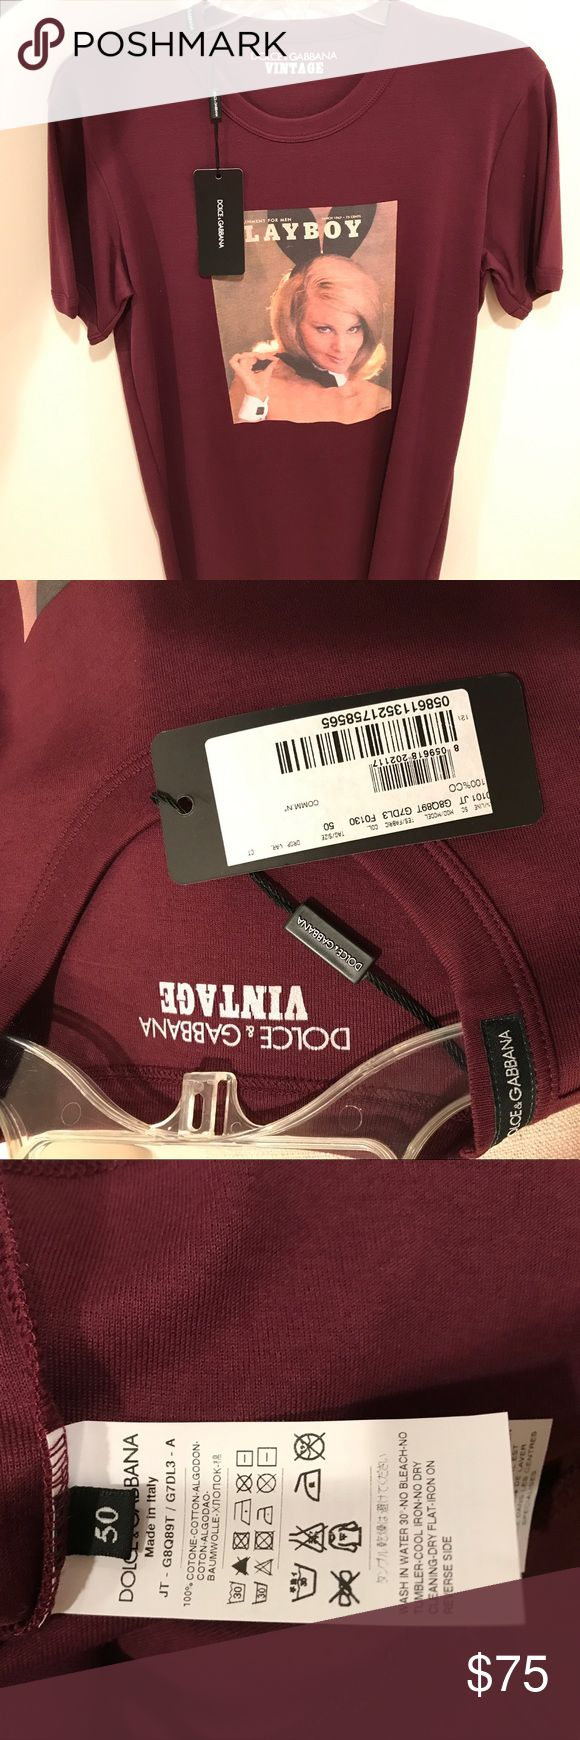 BNWT Men's Dolce & Gabbana Shirt 100% Authentic Brand New With Tags - Never Worn Men's Dolce & Gabbana T Shirt.  100% Authentic.  Size 50 (European) Fits size Medium/Large.  Front of shirt includes 1967 Playboy Playmate.  Color is maroon.  Never worn and comes from a pet free and smoke free home. Dolce & Gabbana Shirts Tees - Short Sleeve